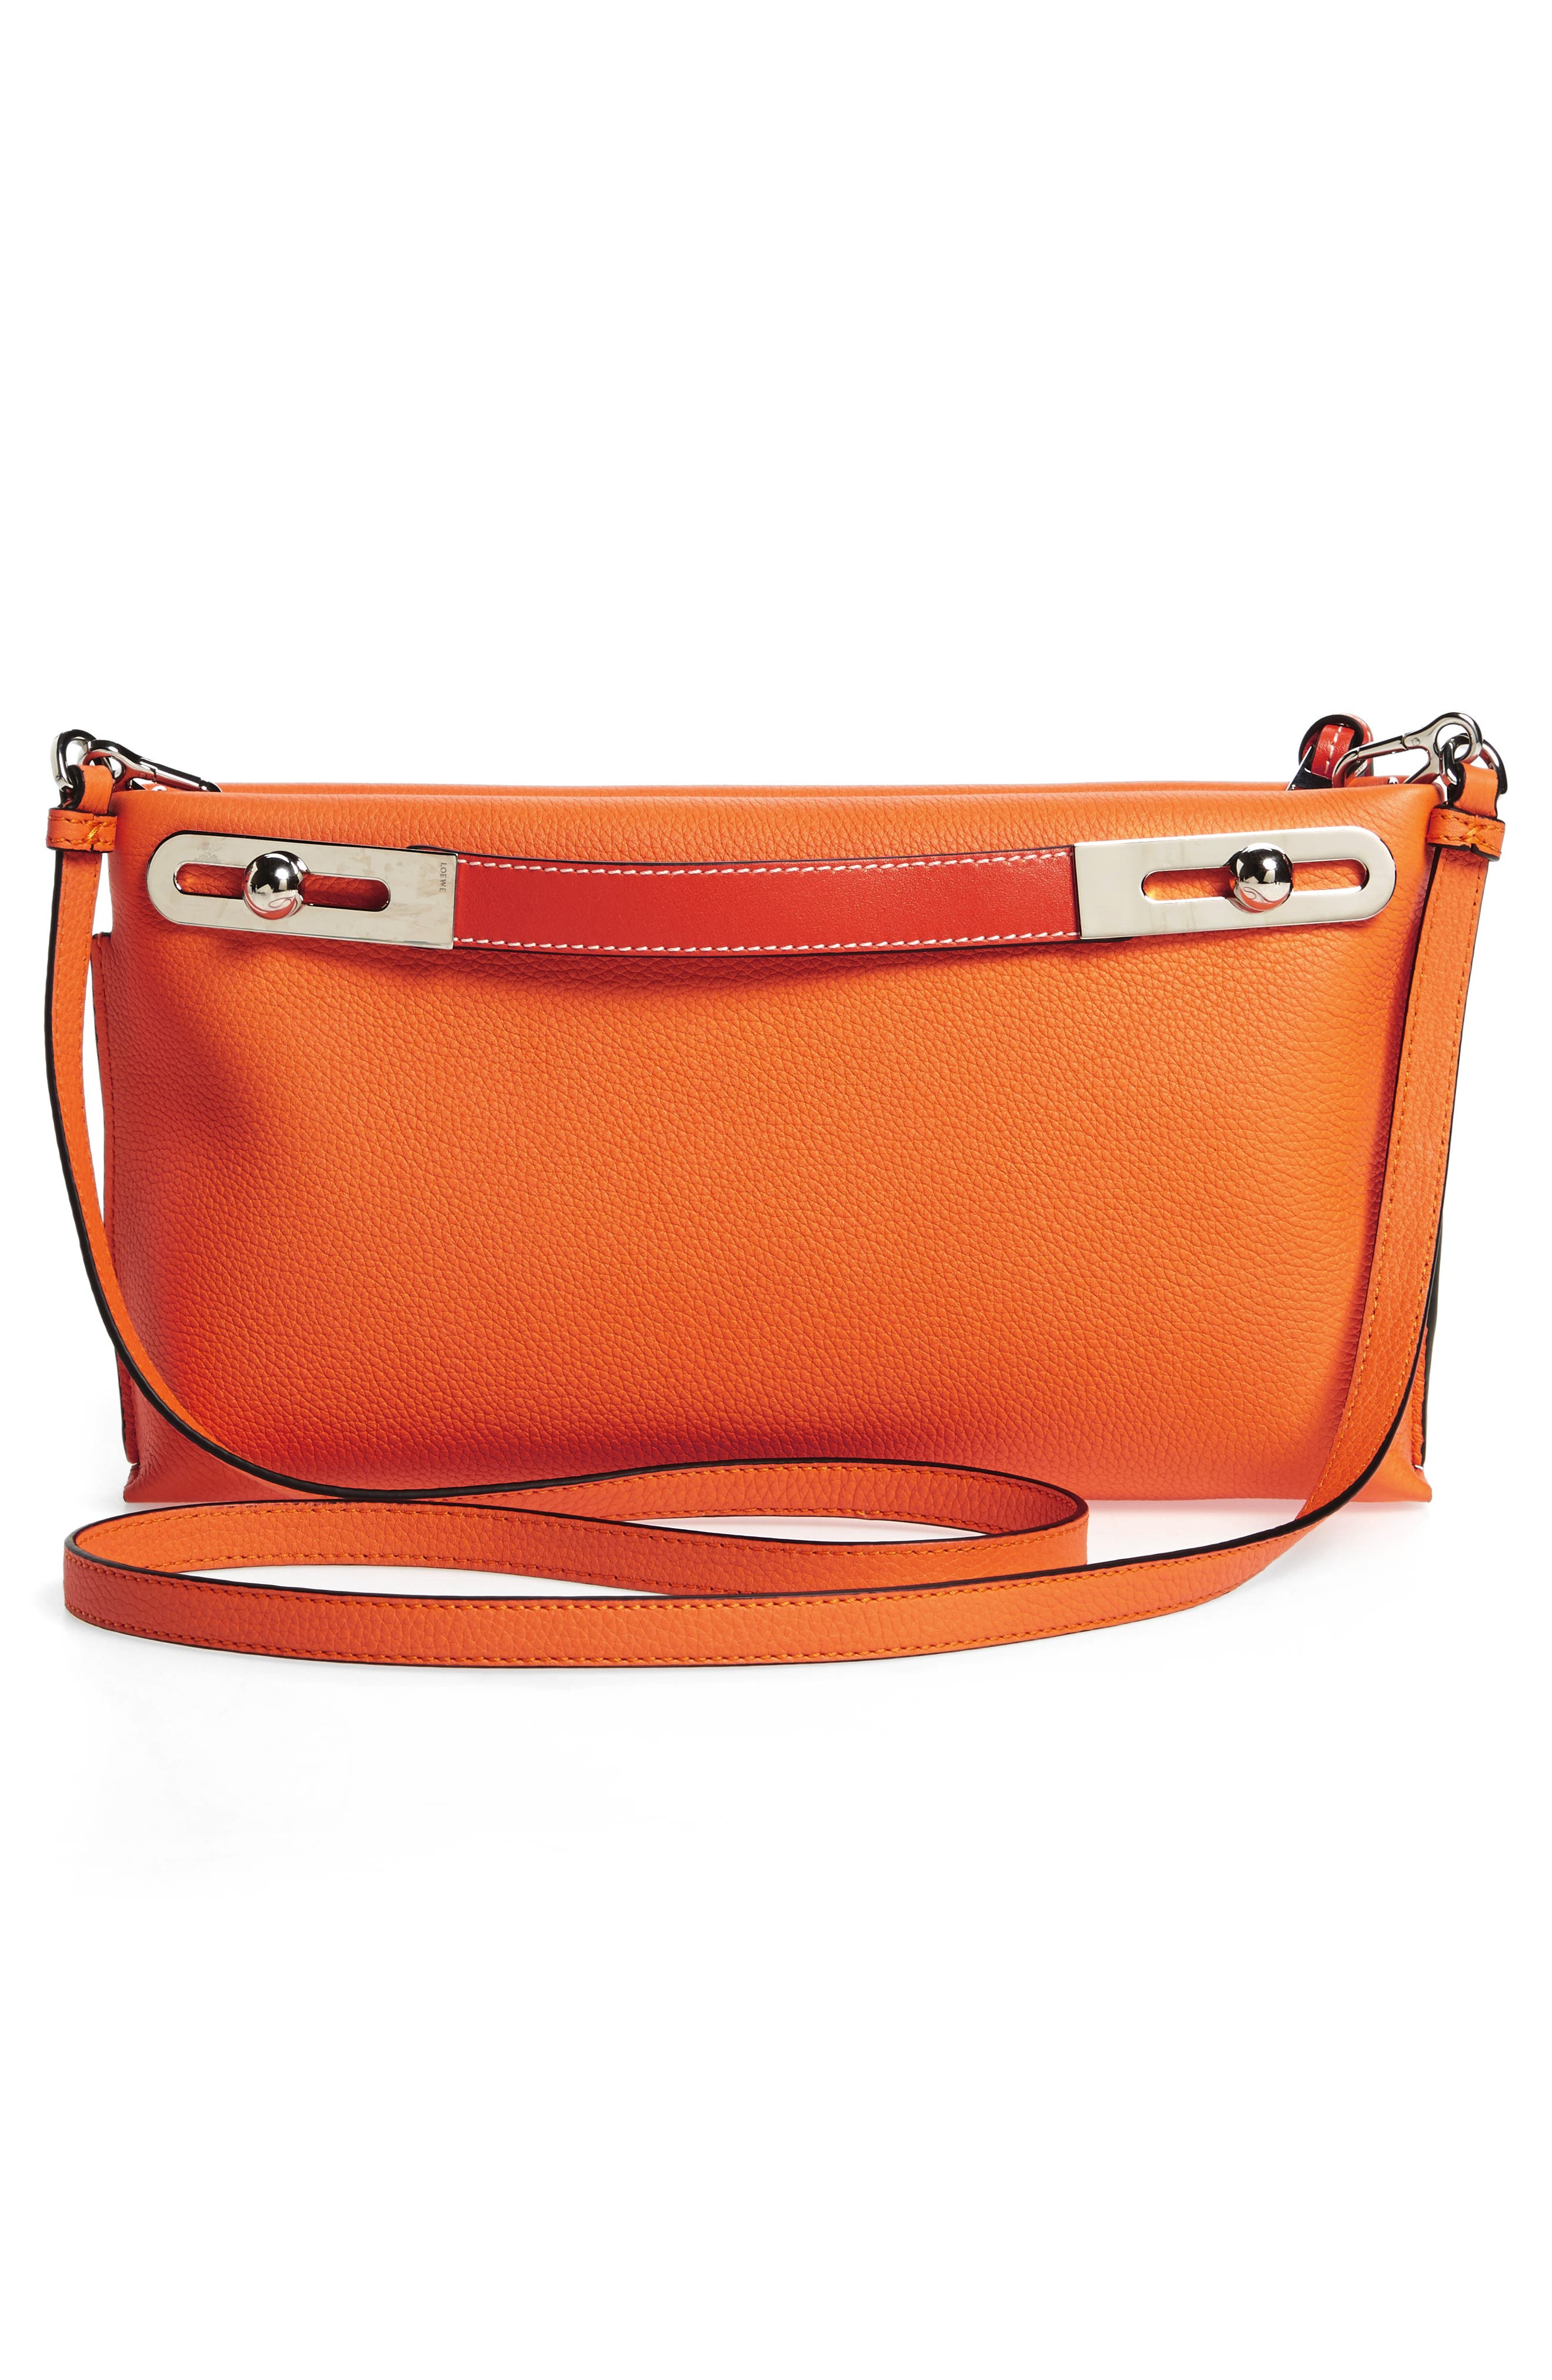 Small Missy Leather Crossbody Bag,                             Alternate thumbnail 4, color,